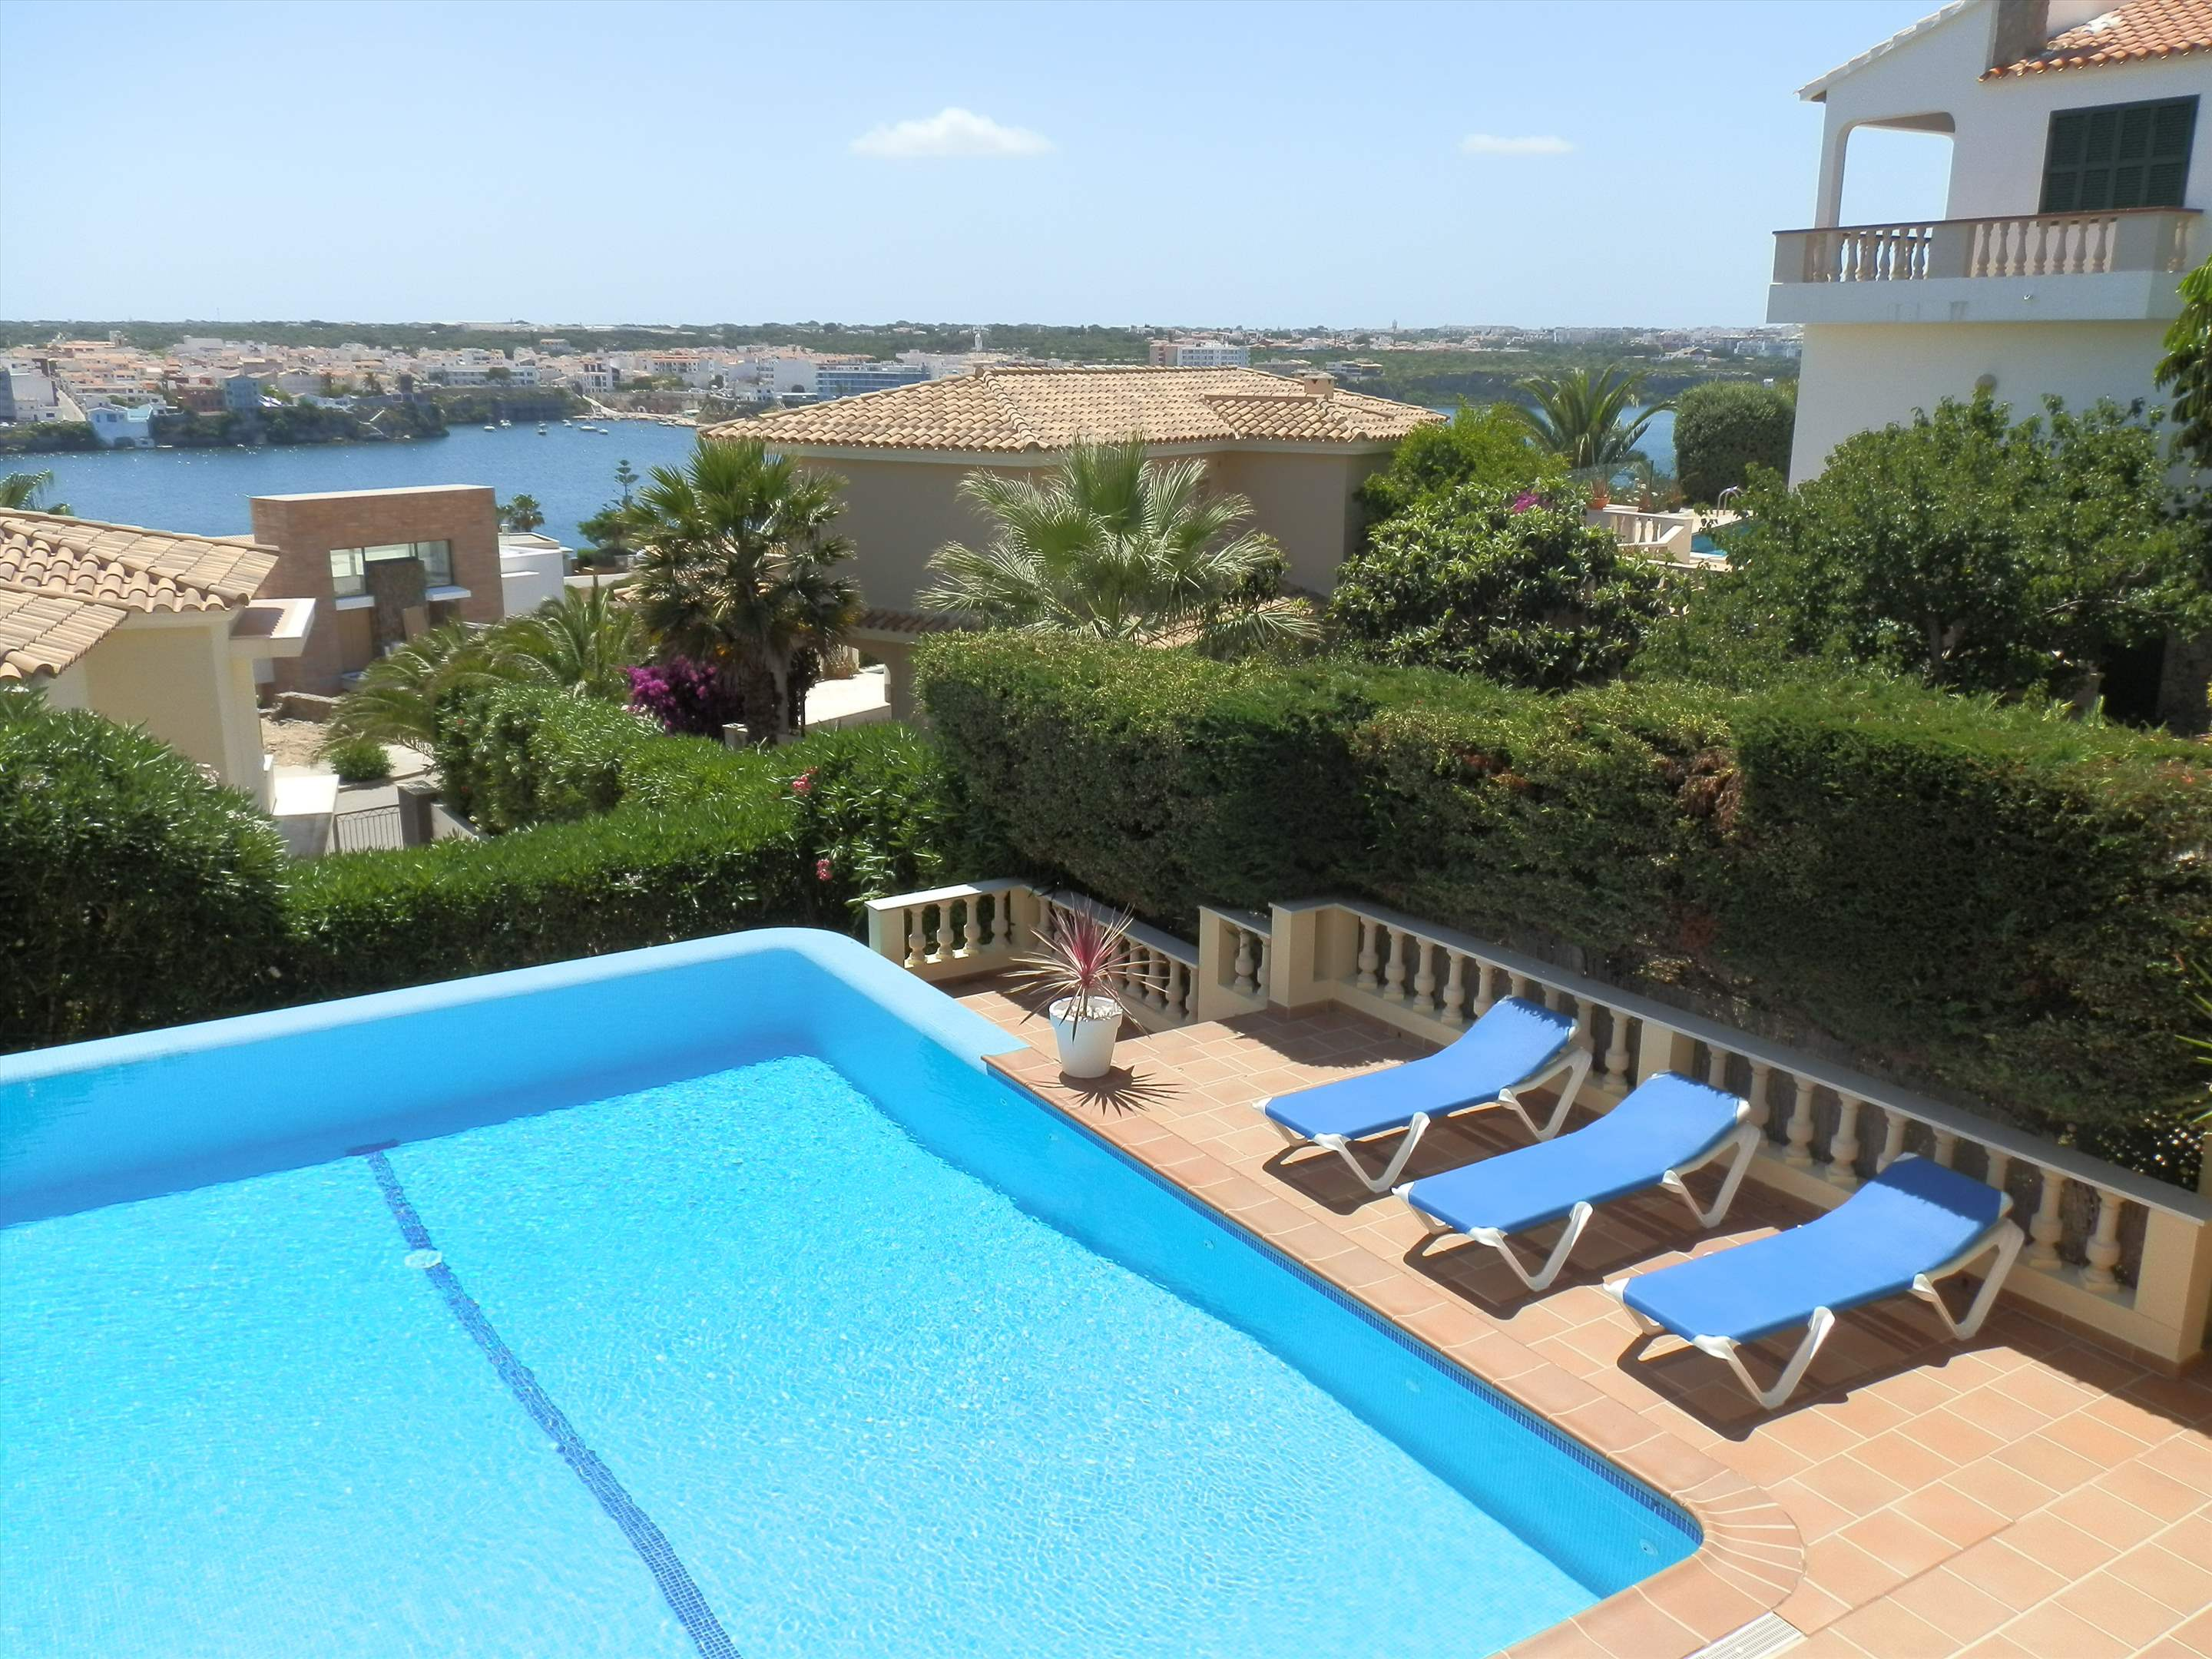 Son De Mar, 5 bedroom villa in Mahon, San Luis & South East, Menorca Photo #3